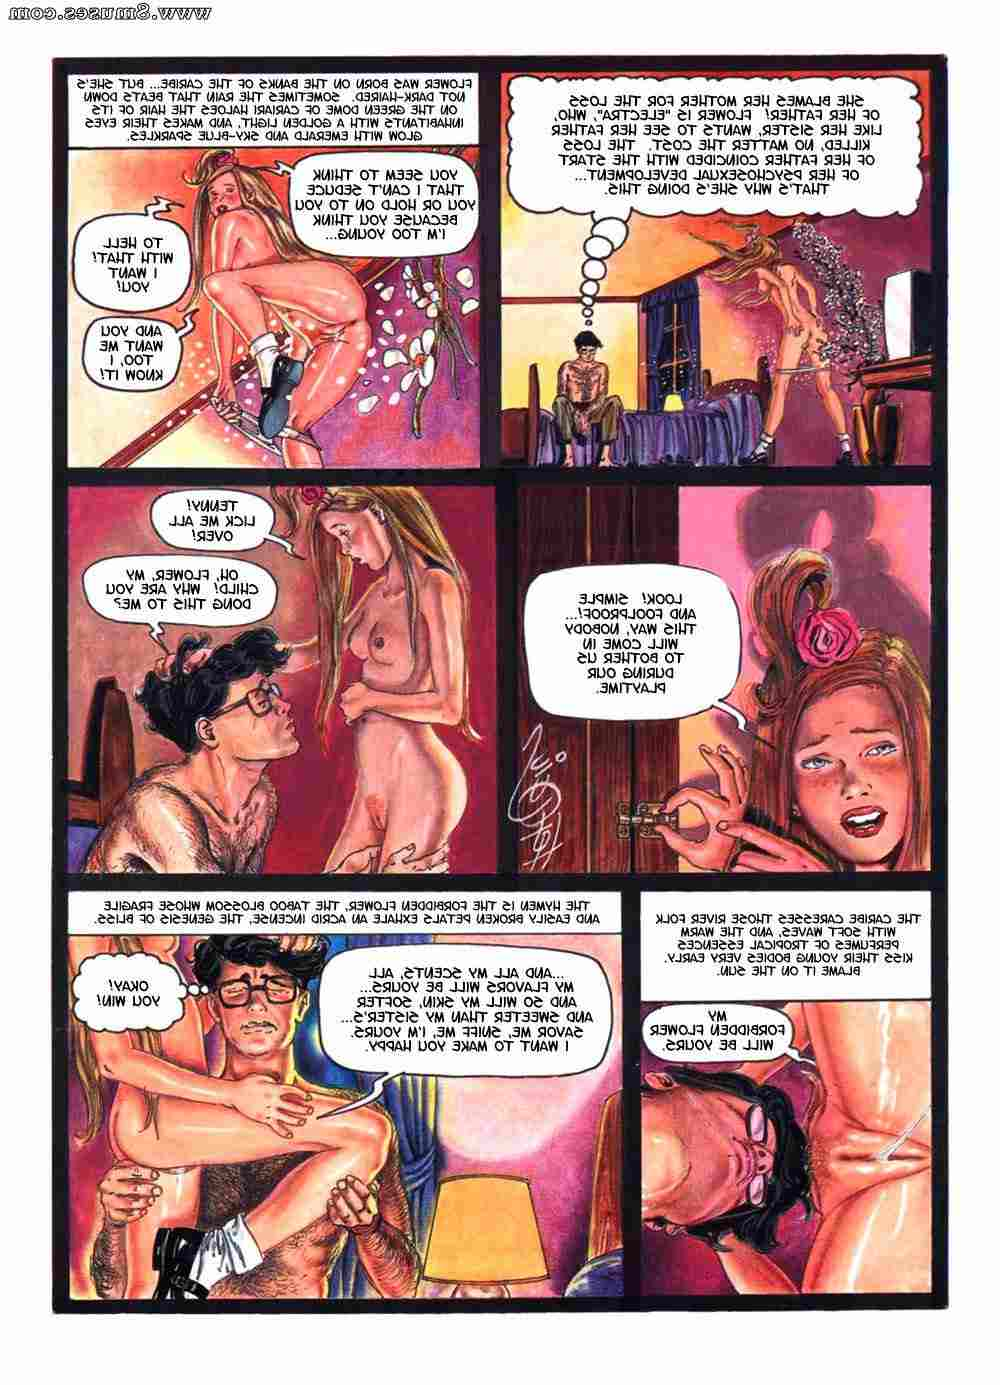 Ferocius-Comics/Forbidden-Flower Forbidden_Flower__8muses_-_Sex_and_Porn_Comics_40.jpg